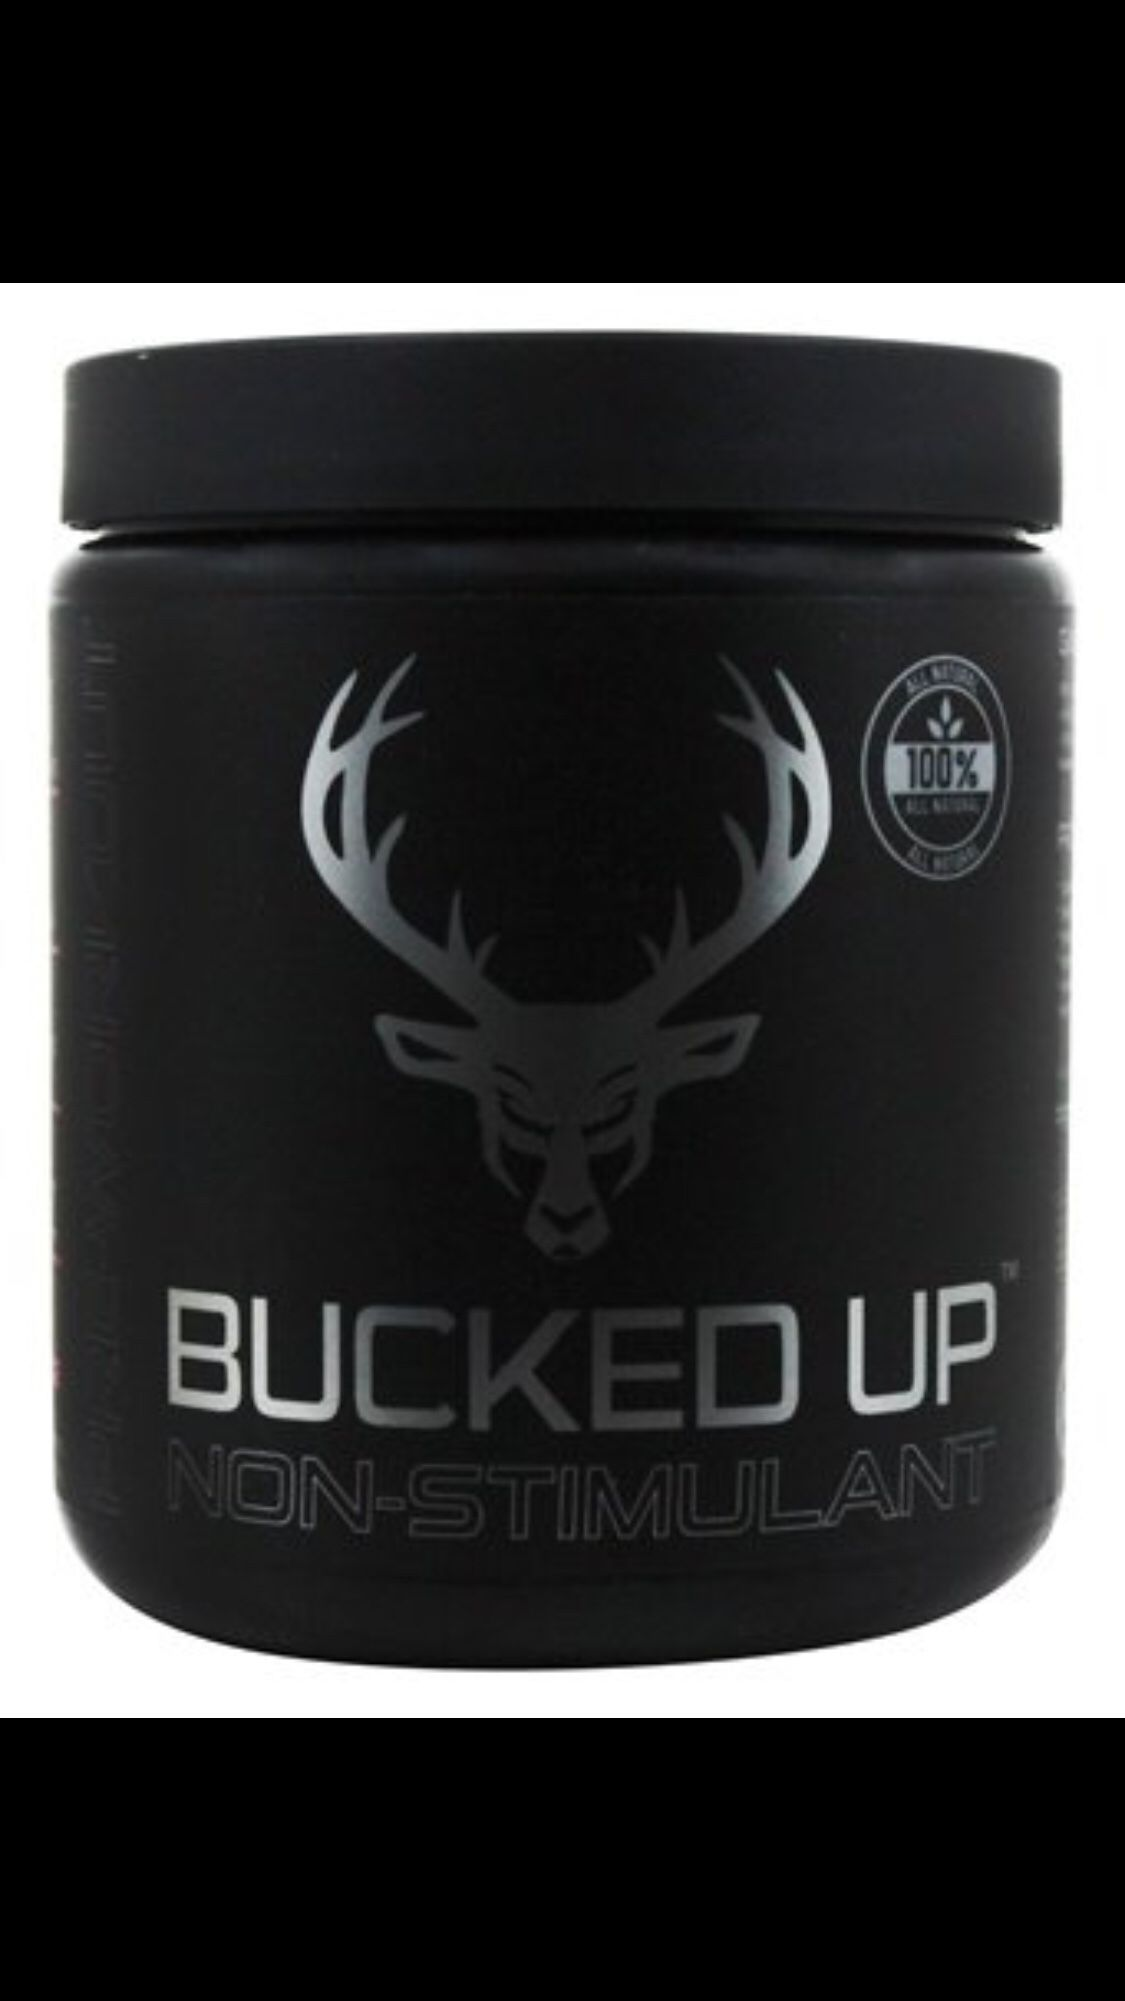 BUCKED UP NON STIMULANT bodybuilding fitness crossfit